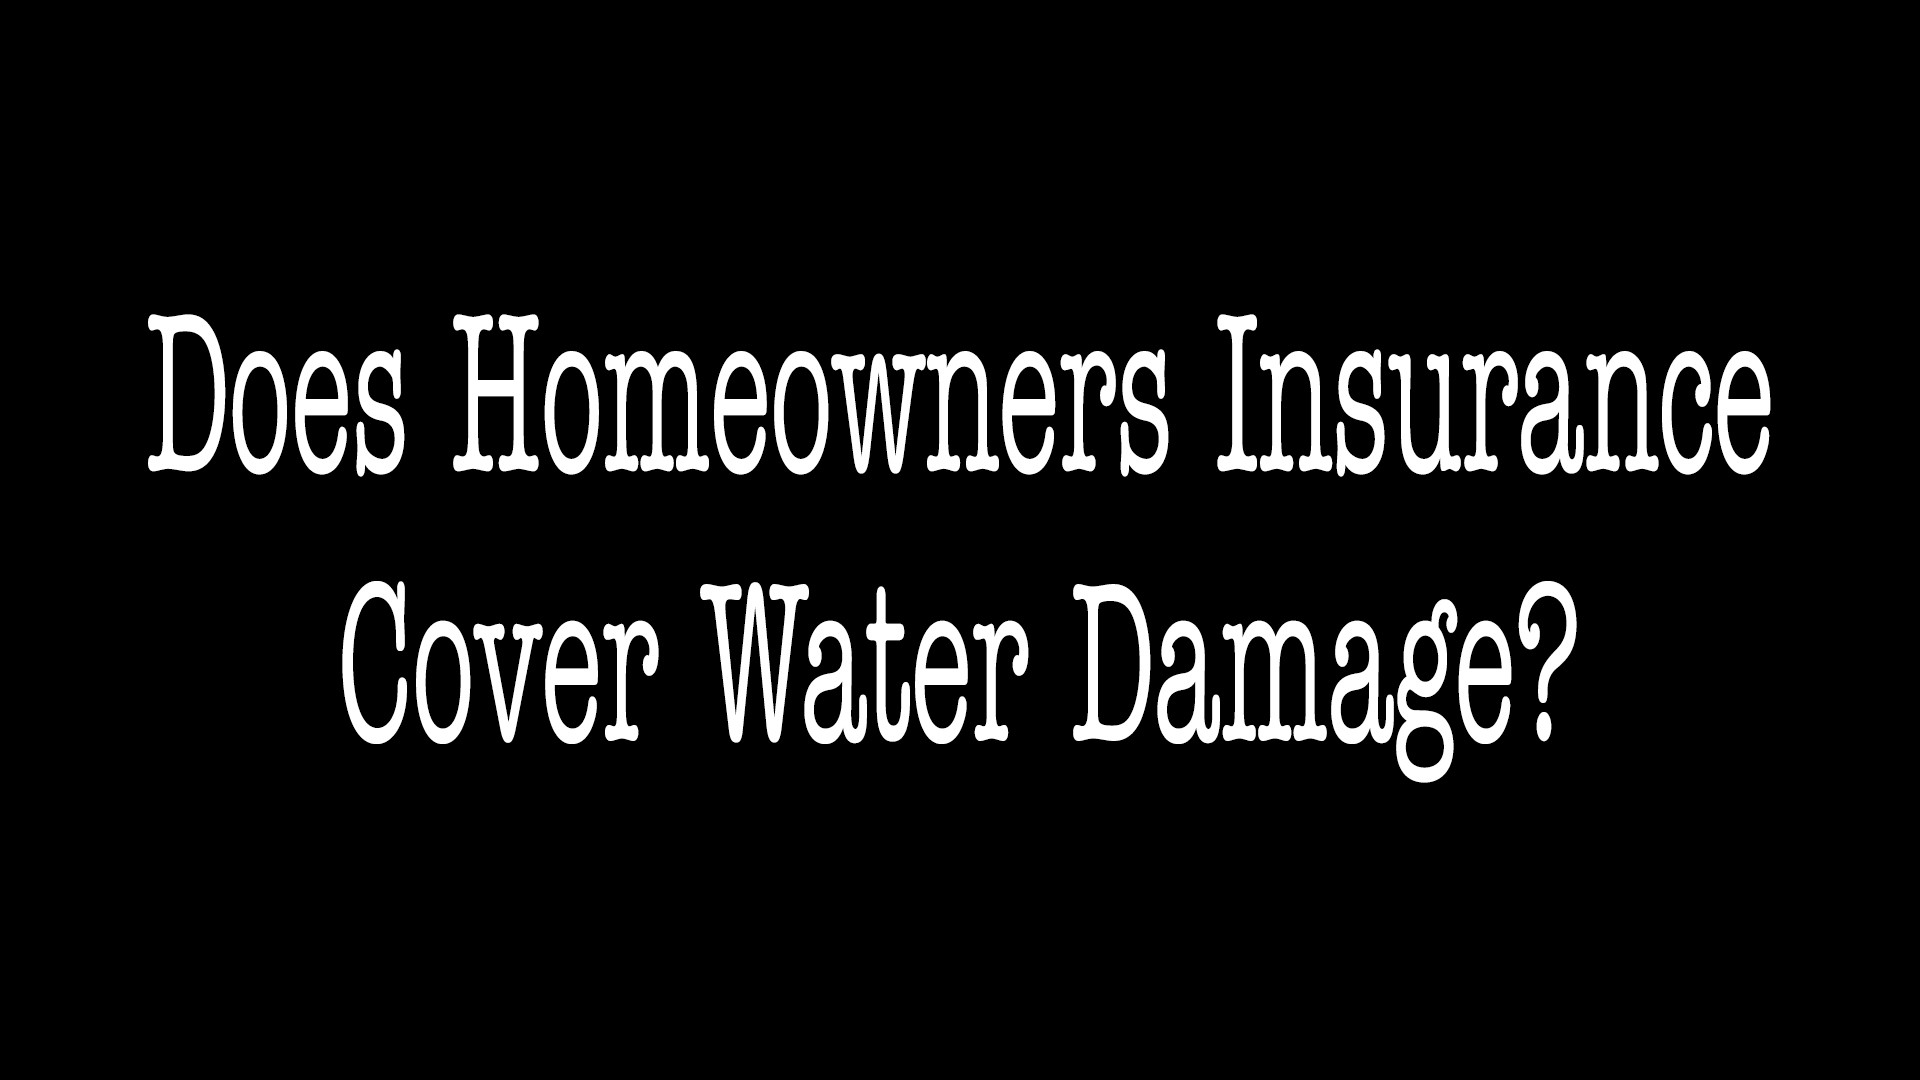 Does Homeowners Insurance Cover Water Damage - ALLCHOICE Insurance - North Carolina